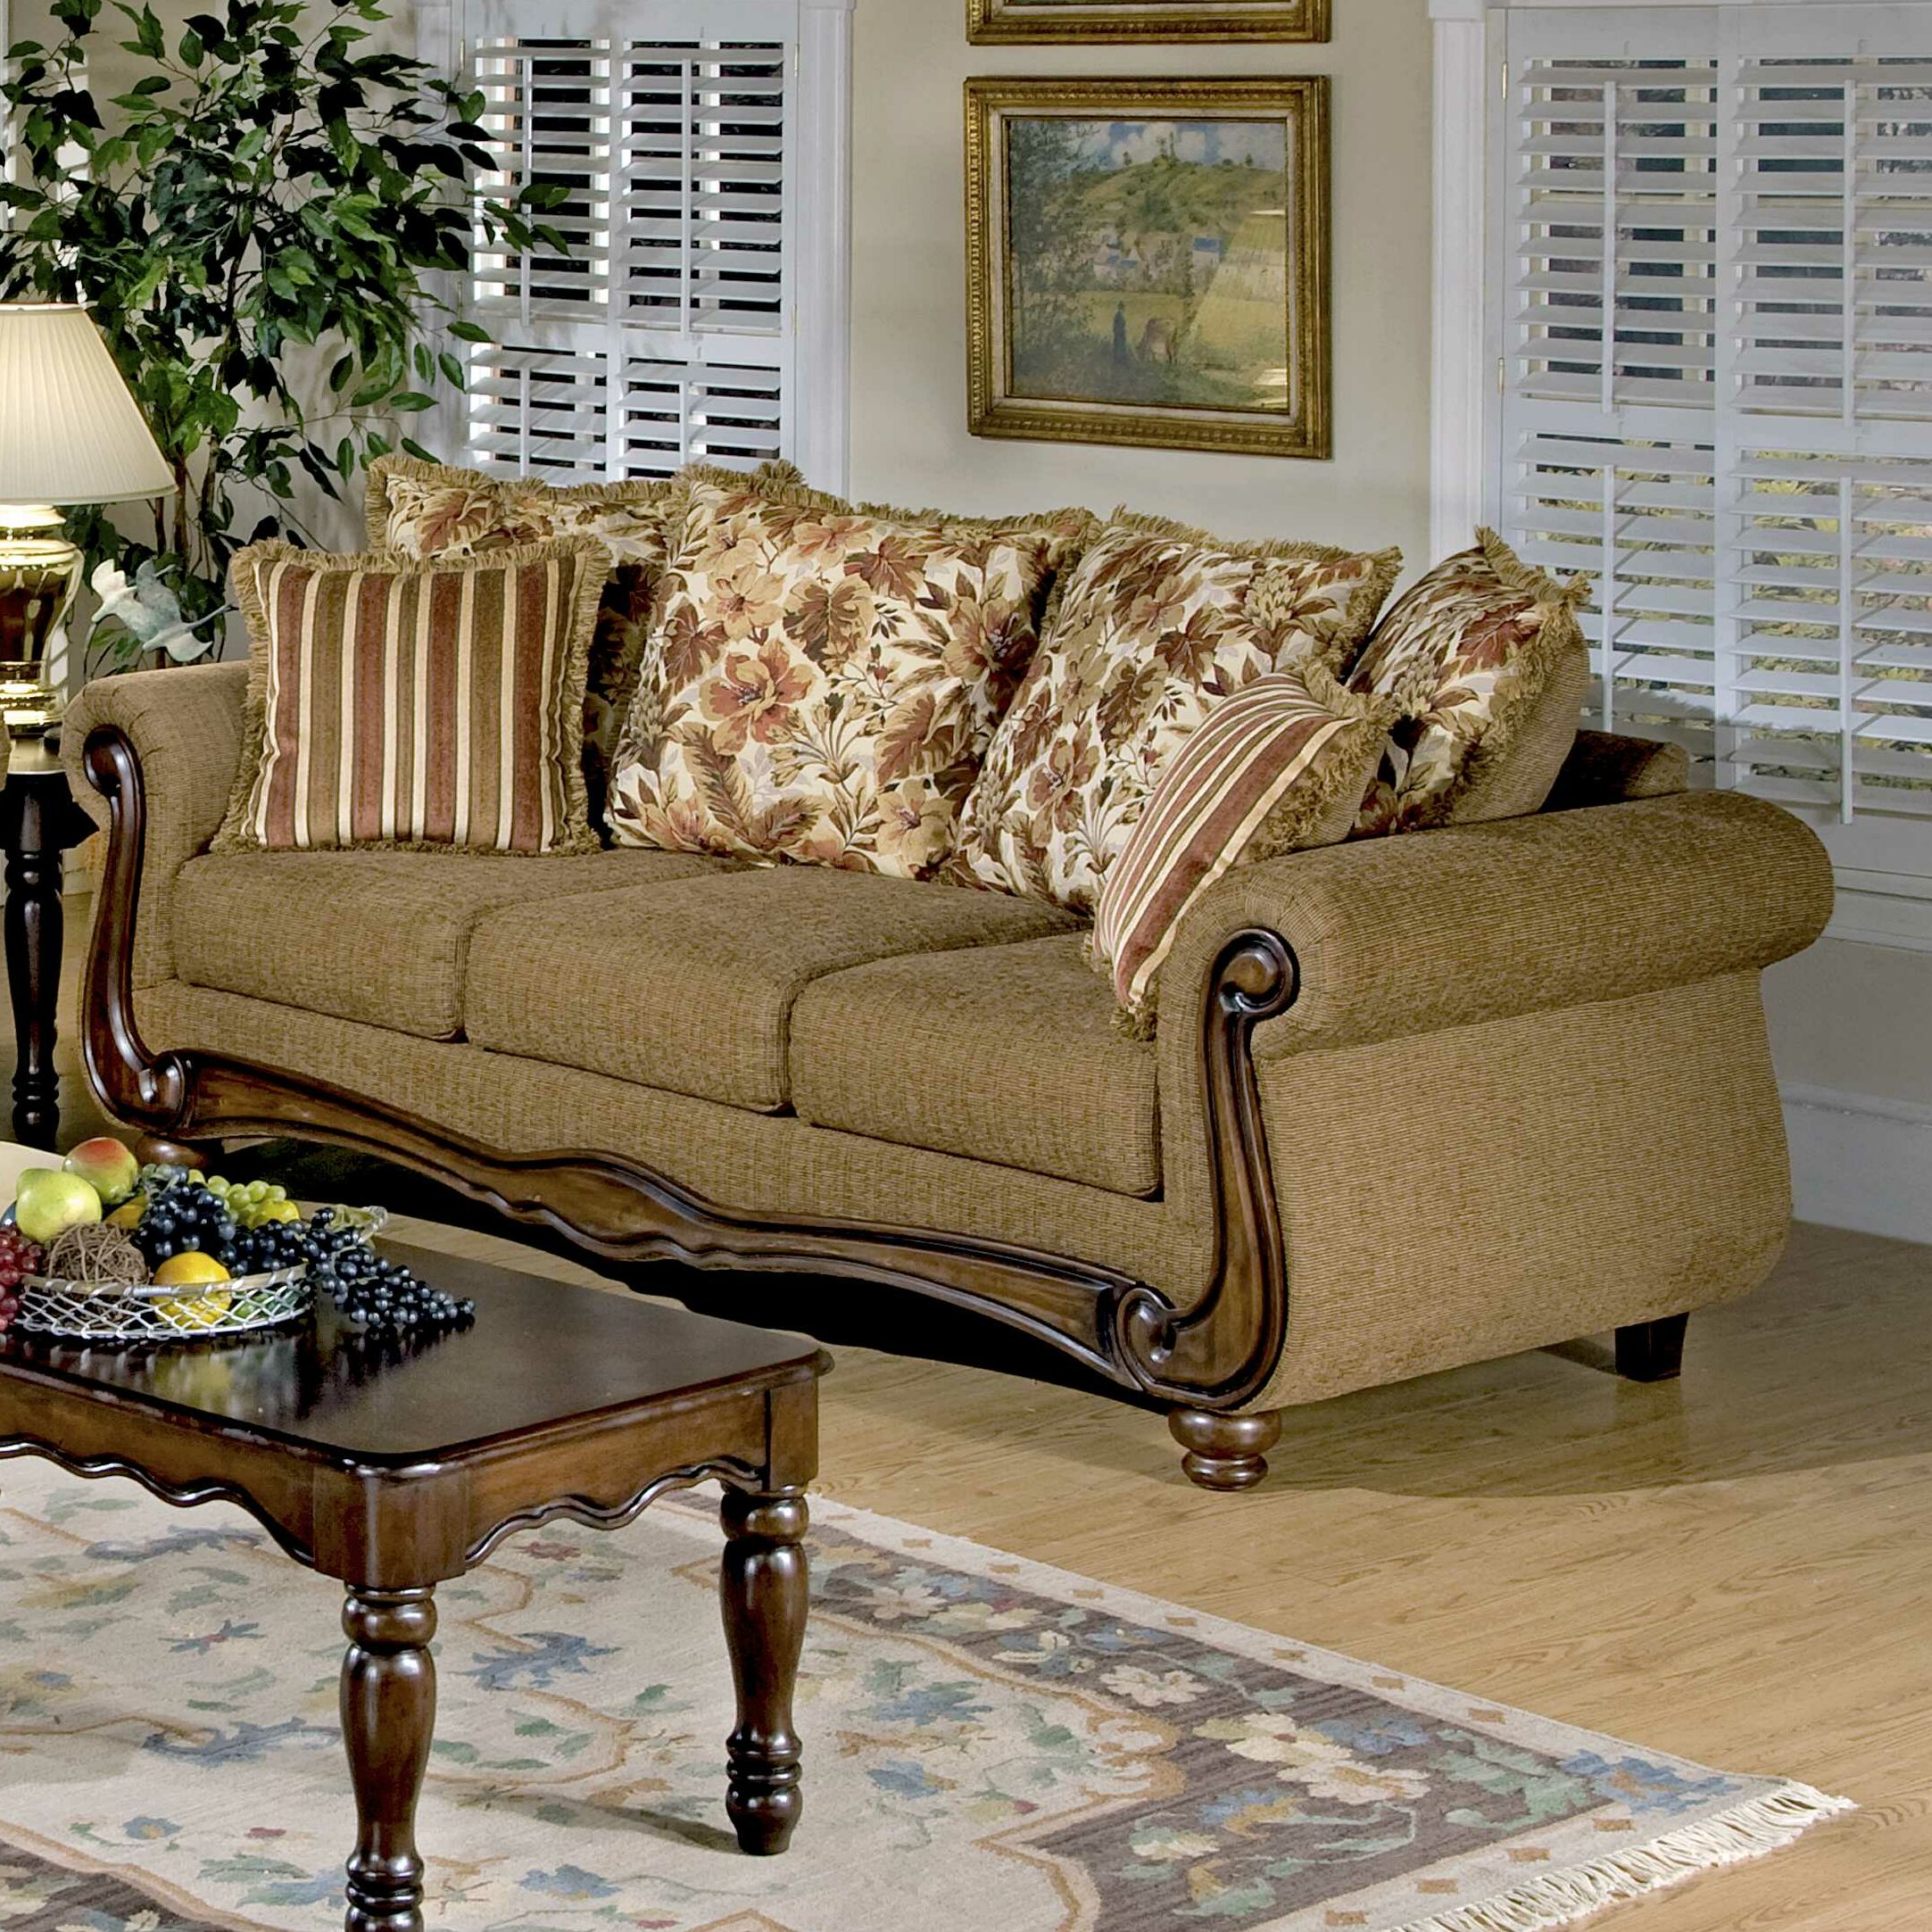 serta upholstery sofa reviews wayfair. Black Bedroom Furniture Sets. Home Design Ideas